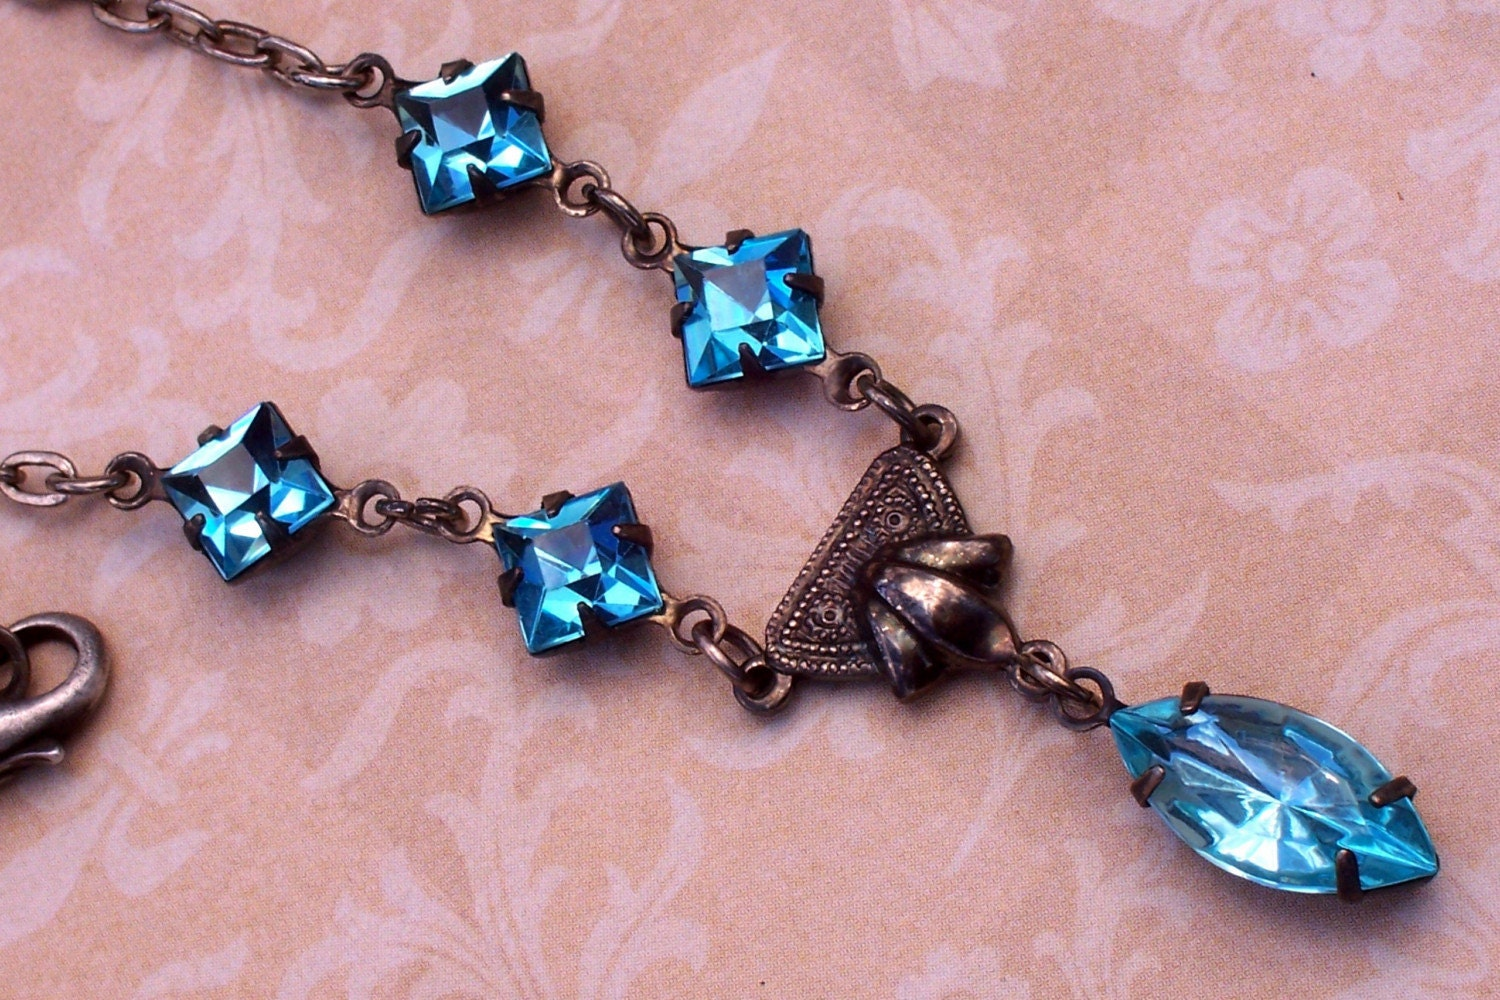 Aqua Blue Necklace  Aquamarine by malves1009 on Etsy from etsy.com